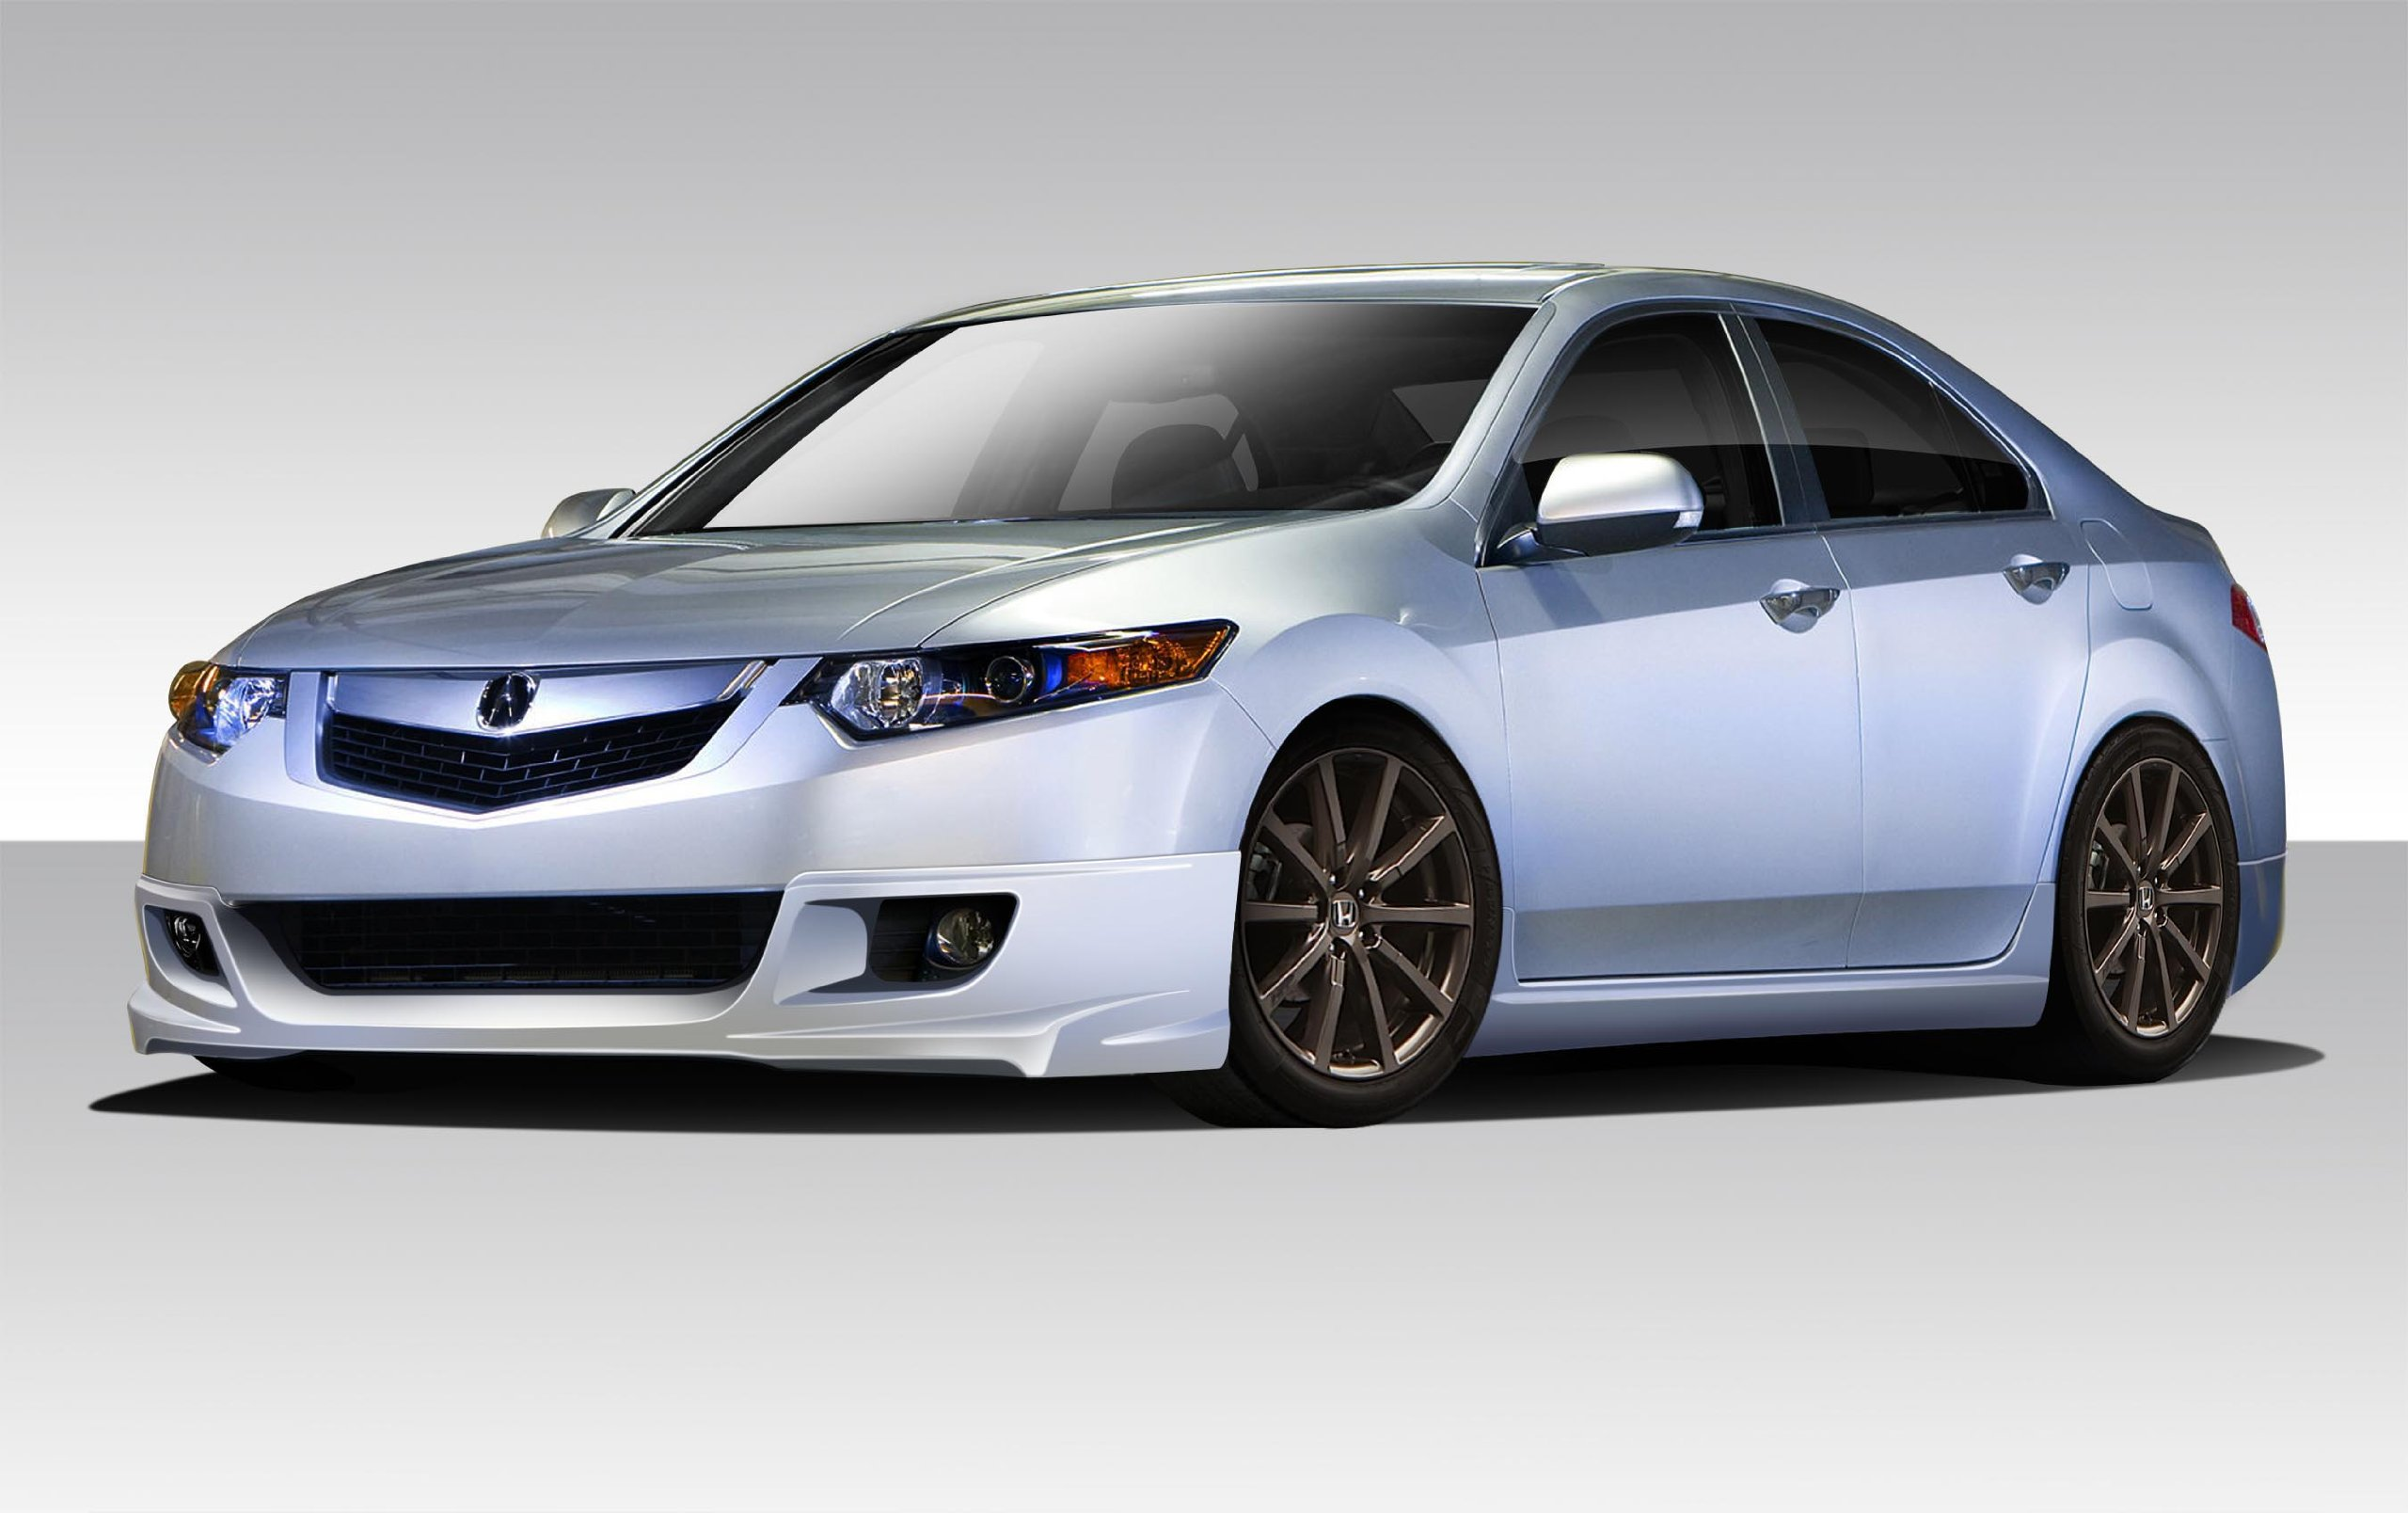 2009-2010 Acura TSX Duraflex Type M Body Kit - 4 Piece - Includes Type M Front Lip Under Spoiler Air Dam (108763) Type M Side Skirts Rocker Panels (108764) Type M Rear Lip Under Spoiler Air Dam (108765)